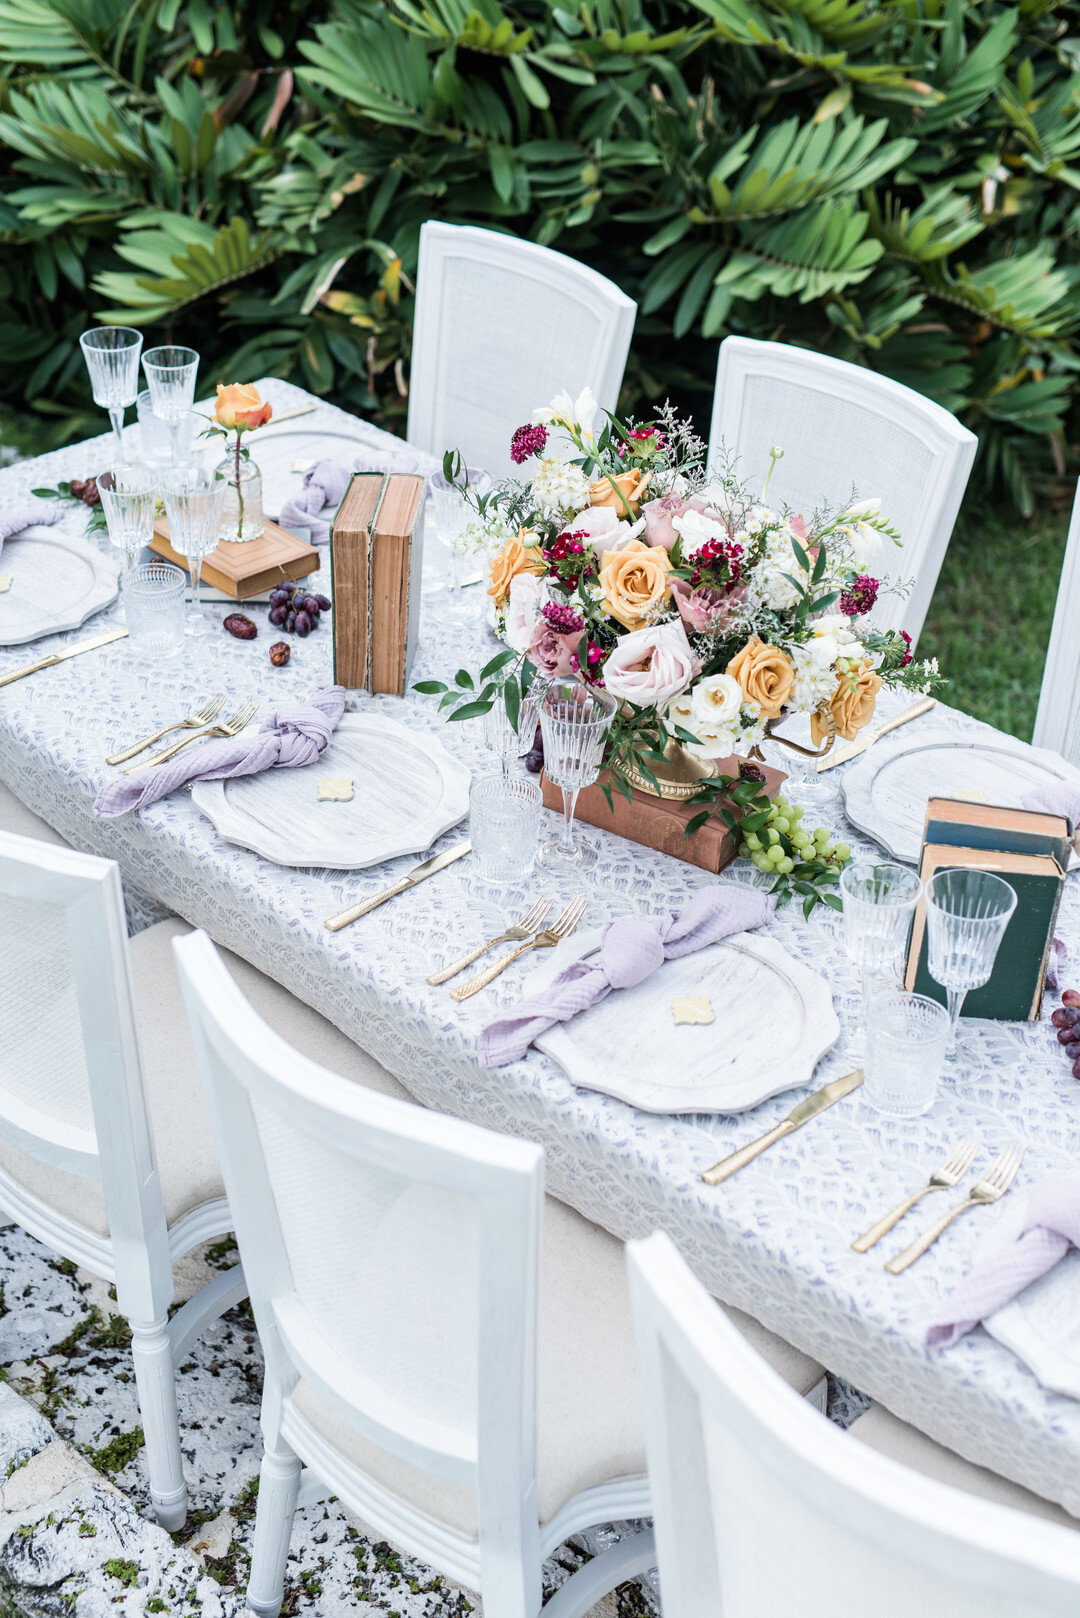 Vintage Southern Charm at Historic Bonnet House  & Gardens_Suzanne Lytle Photography_FortLauderdaleStylized236_big.JPG